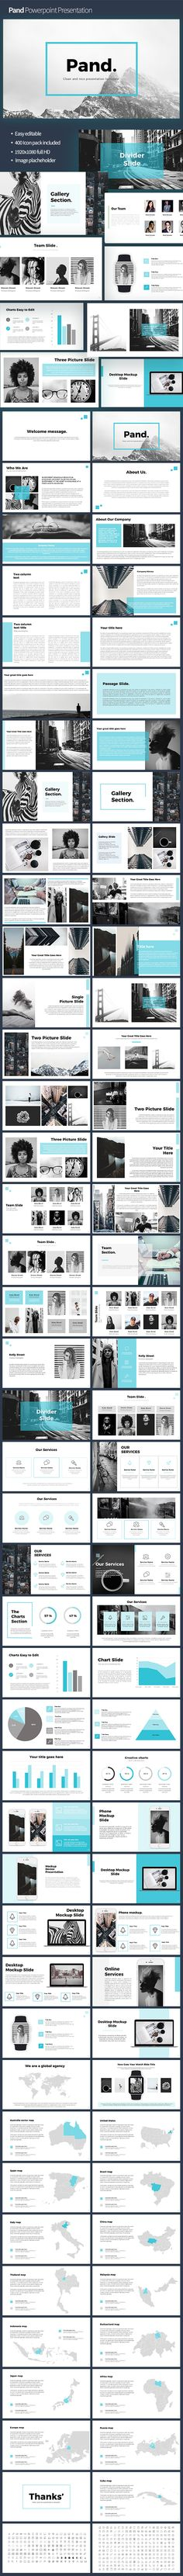 Pand Powerpoint Template - PowerPoint Templates Presentation Templates